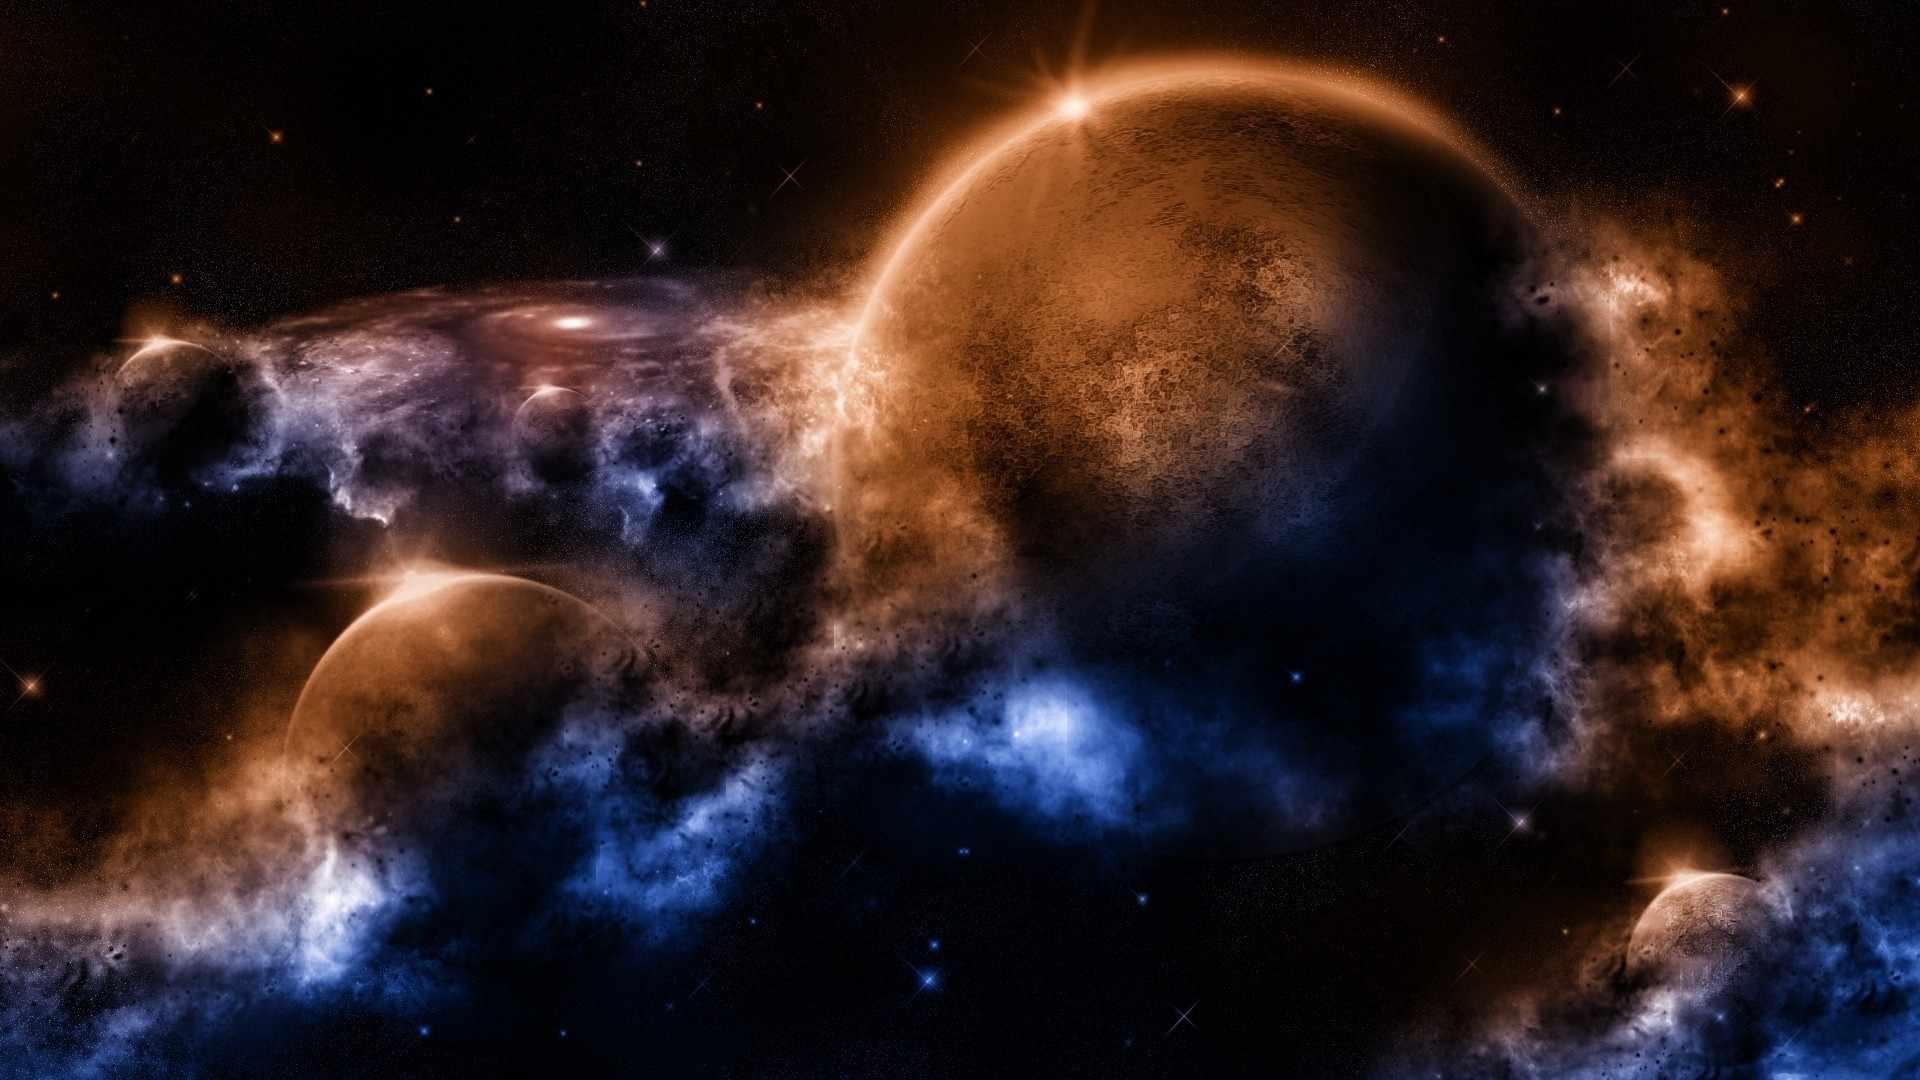 Download Wallpaper 1920x1080 Outer Space Planets Worlds Full HD